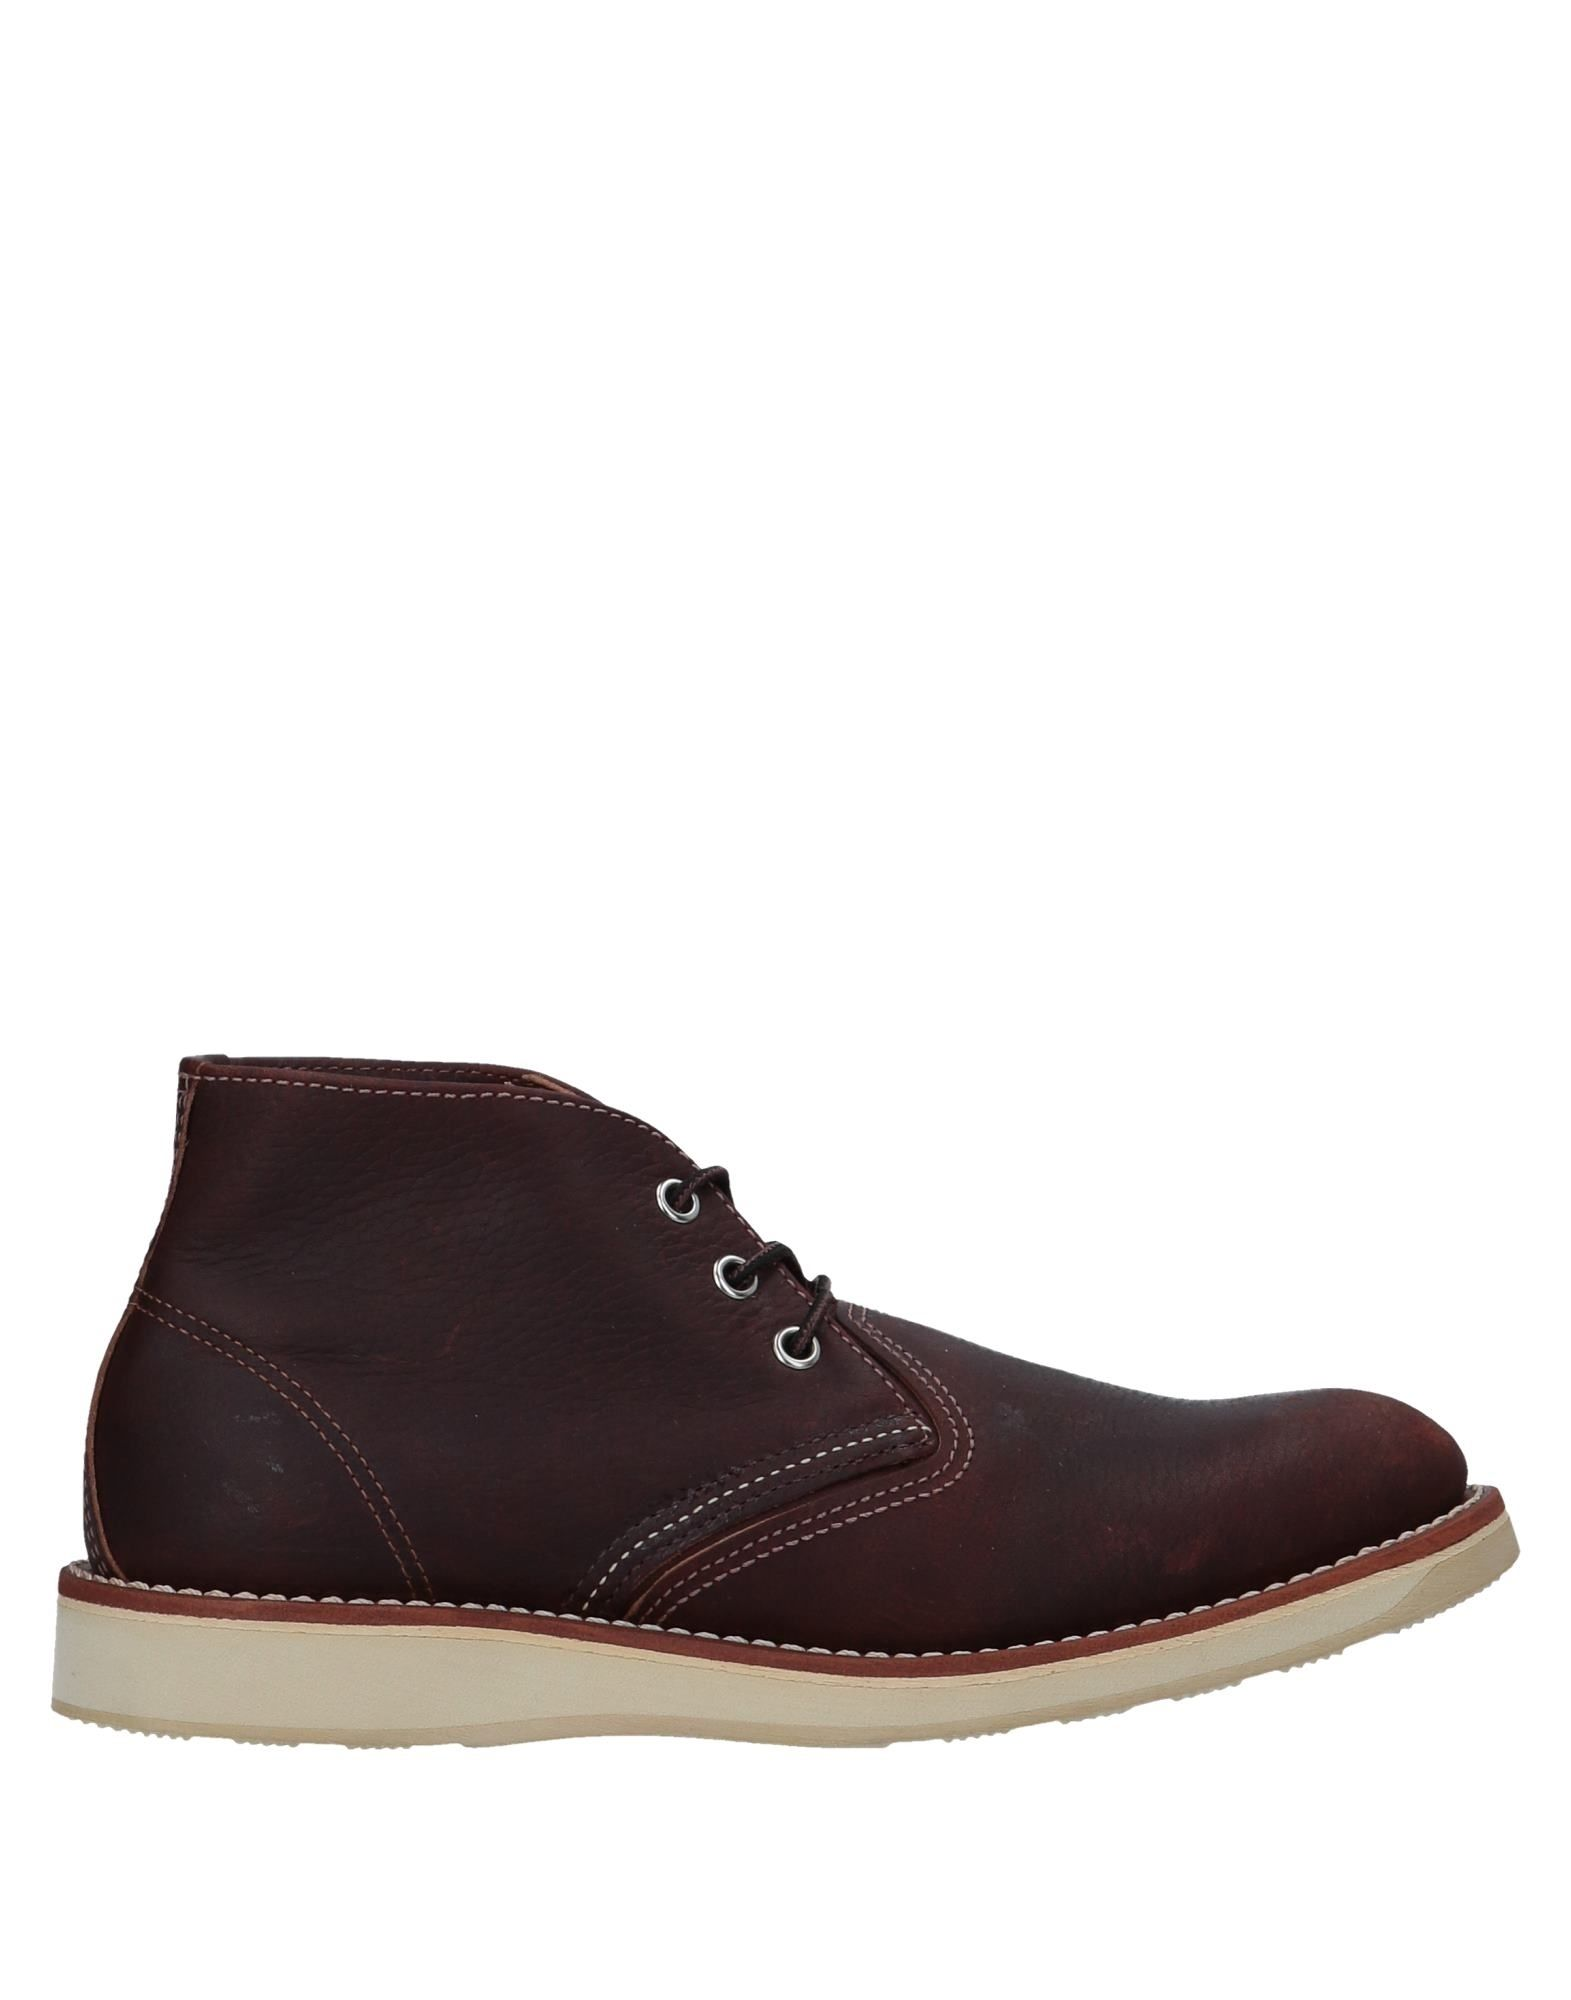 Red Wing Shoes Stiefelette Herren  11535268MO